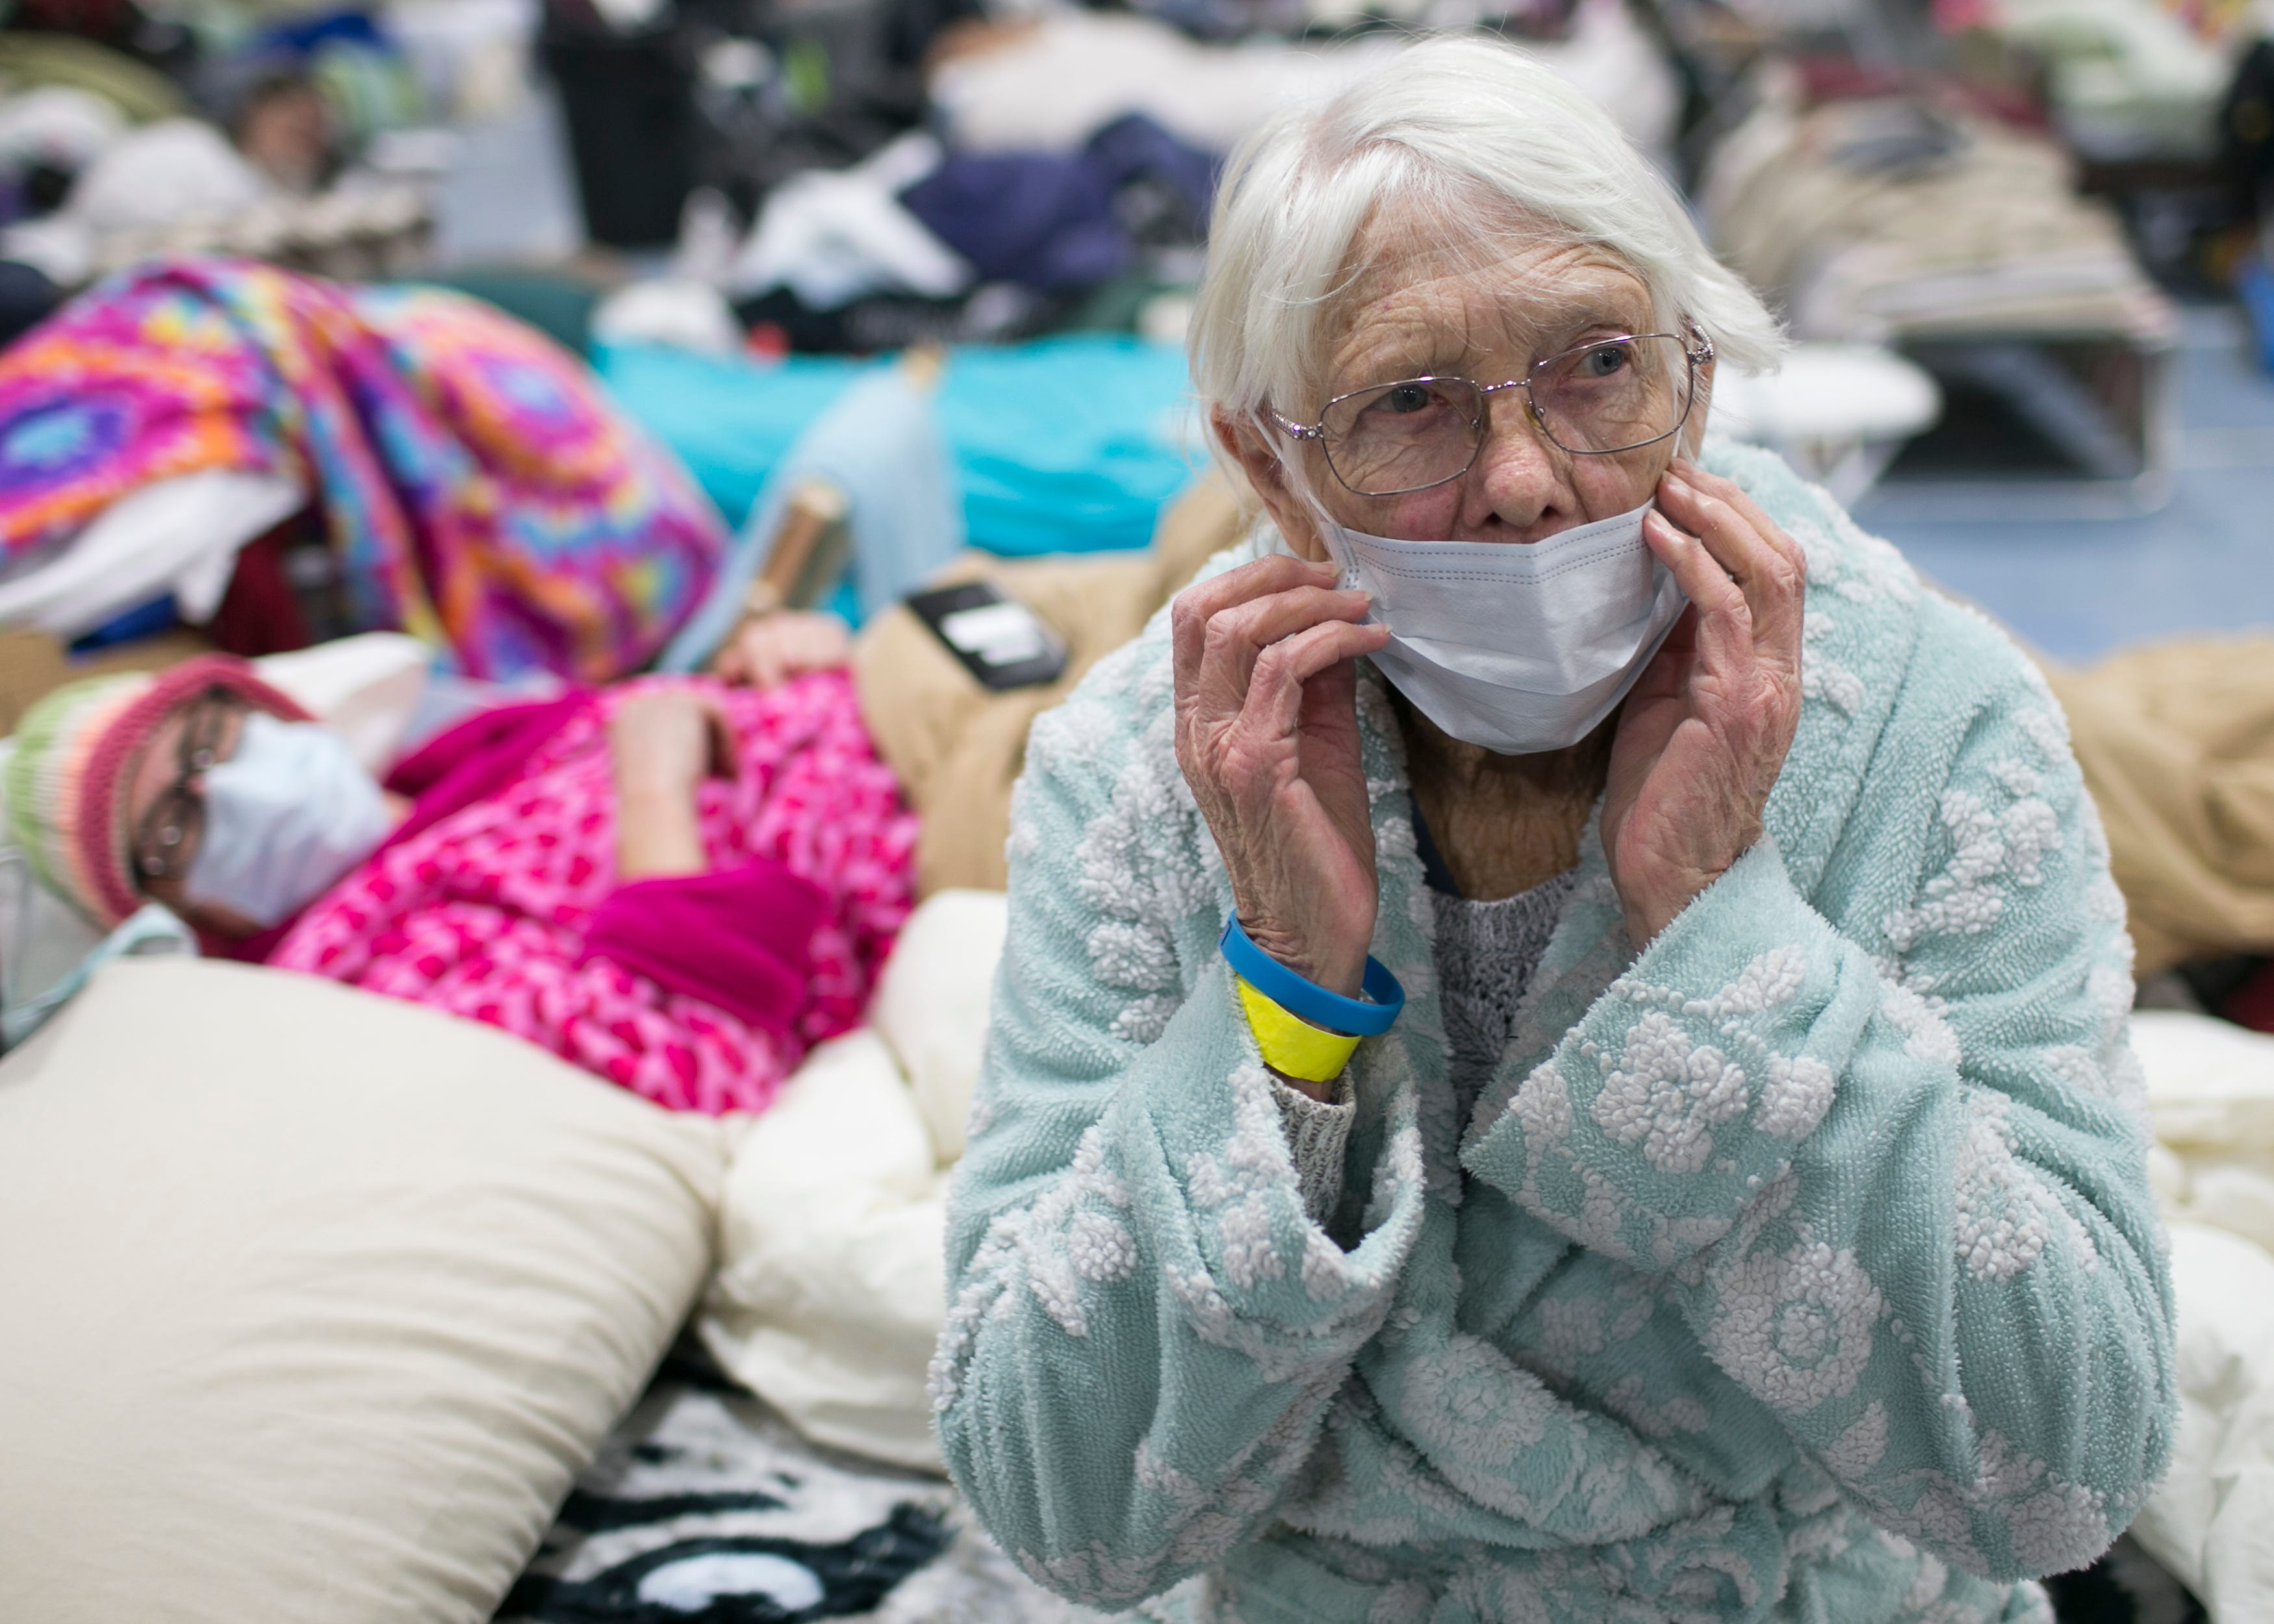 85-year-old Minna Andresen (right) sits for a portrait on a bed next to her daughter Libby Andresen (left) at the East Avenue Church Shelter in Chico, California on Thursday, November 15, 2018. The Andresens lost everything when the Camp Fire destroyed their property in Paradise.